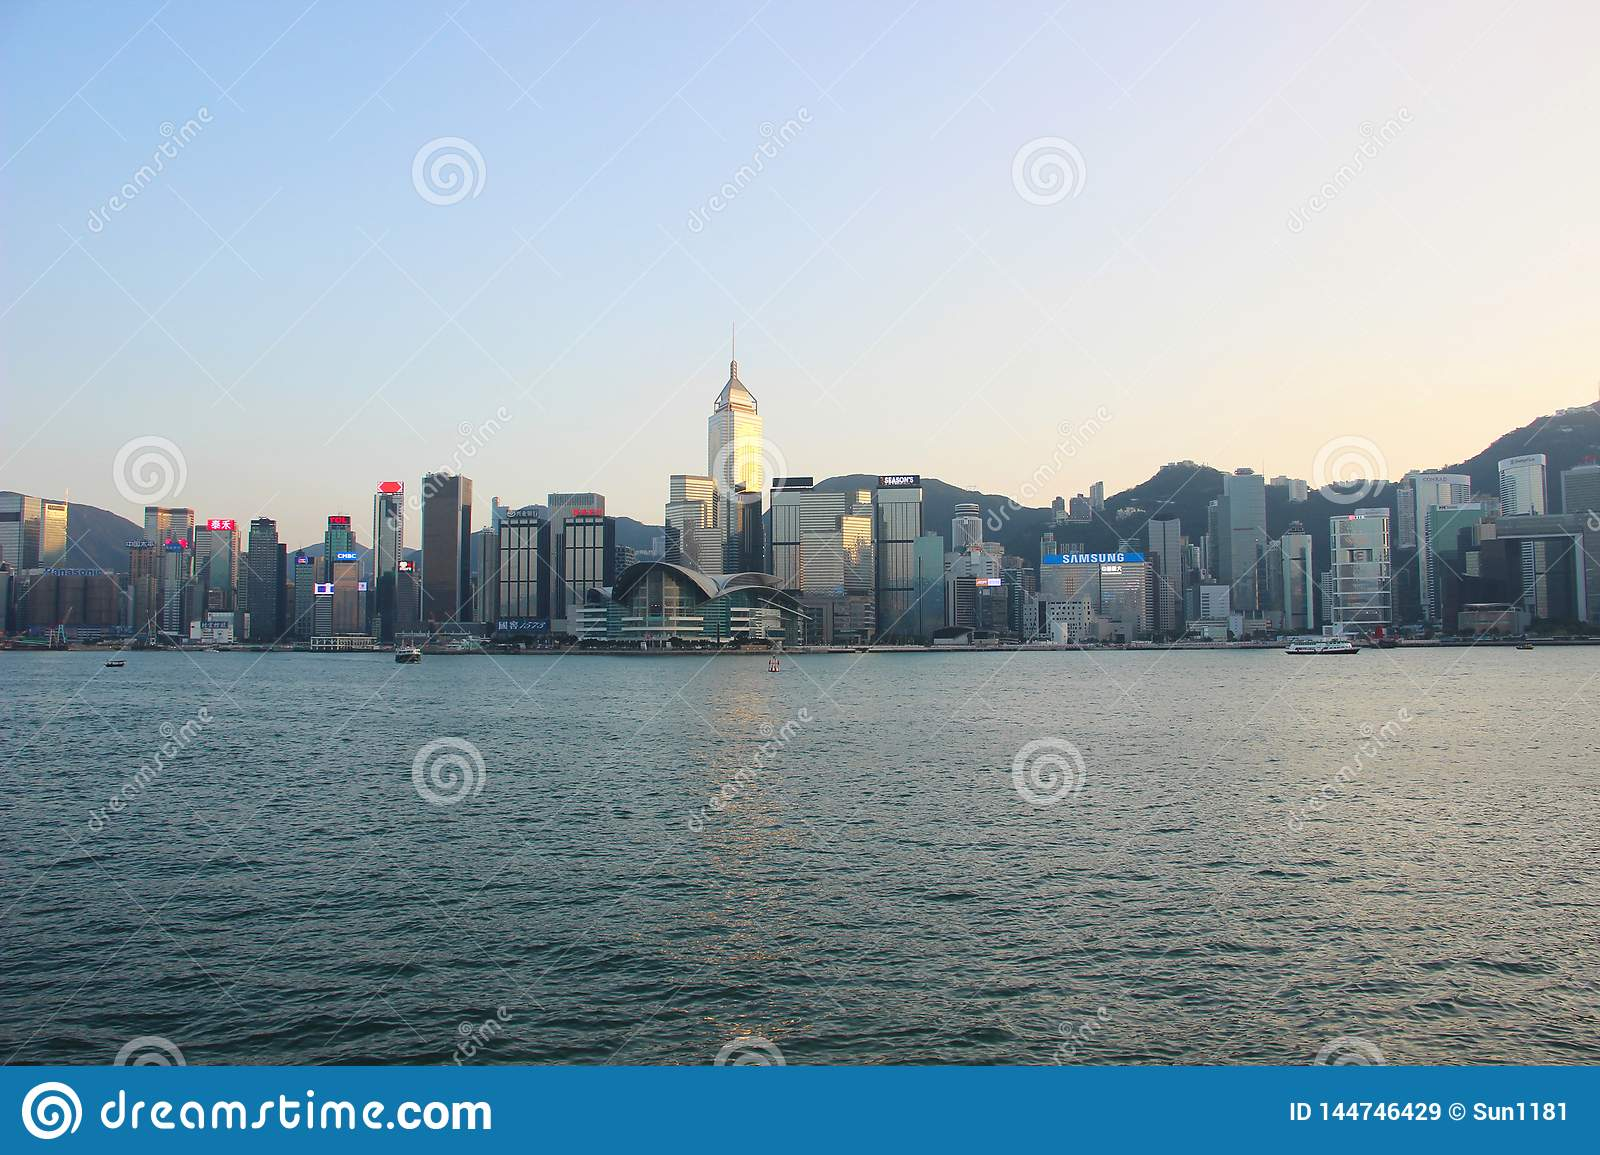 Hong Kong city, quay